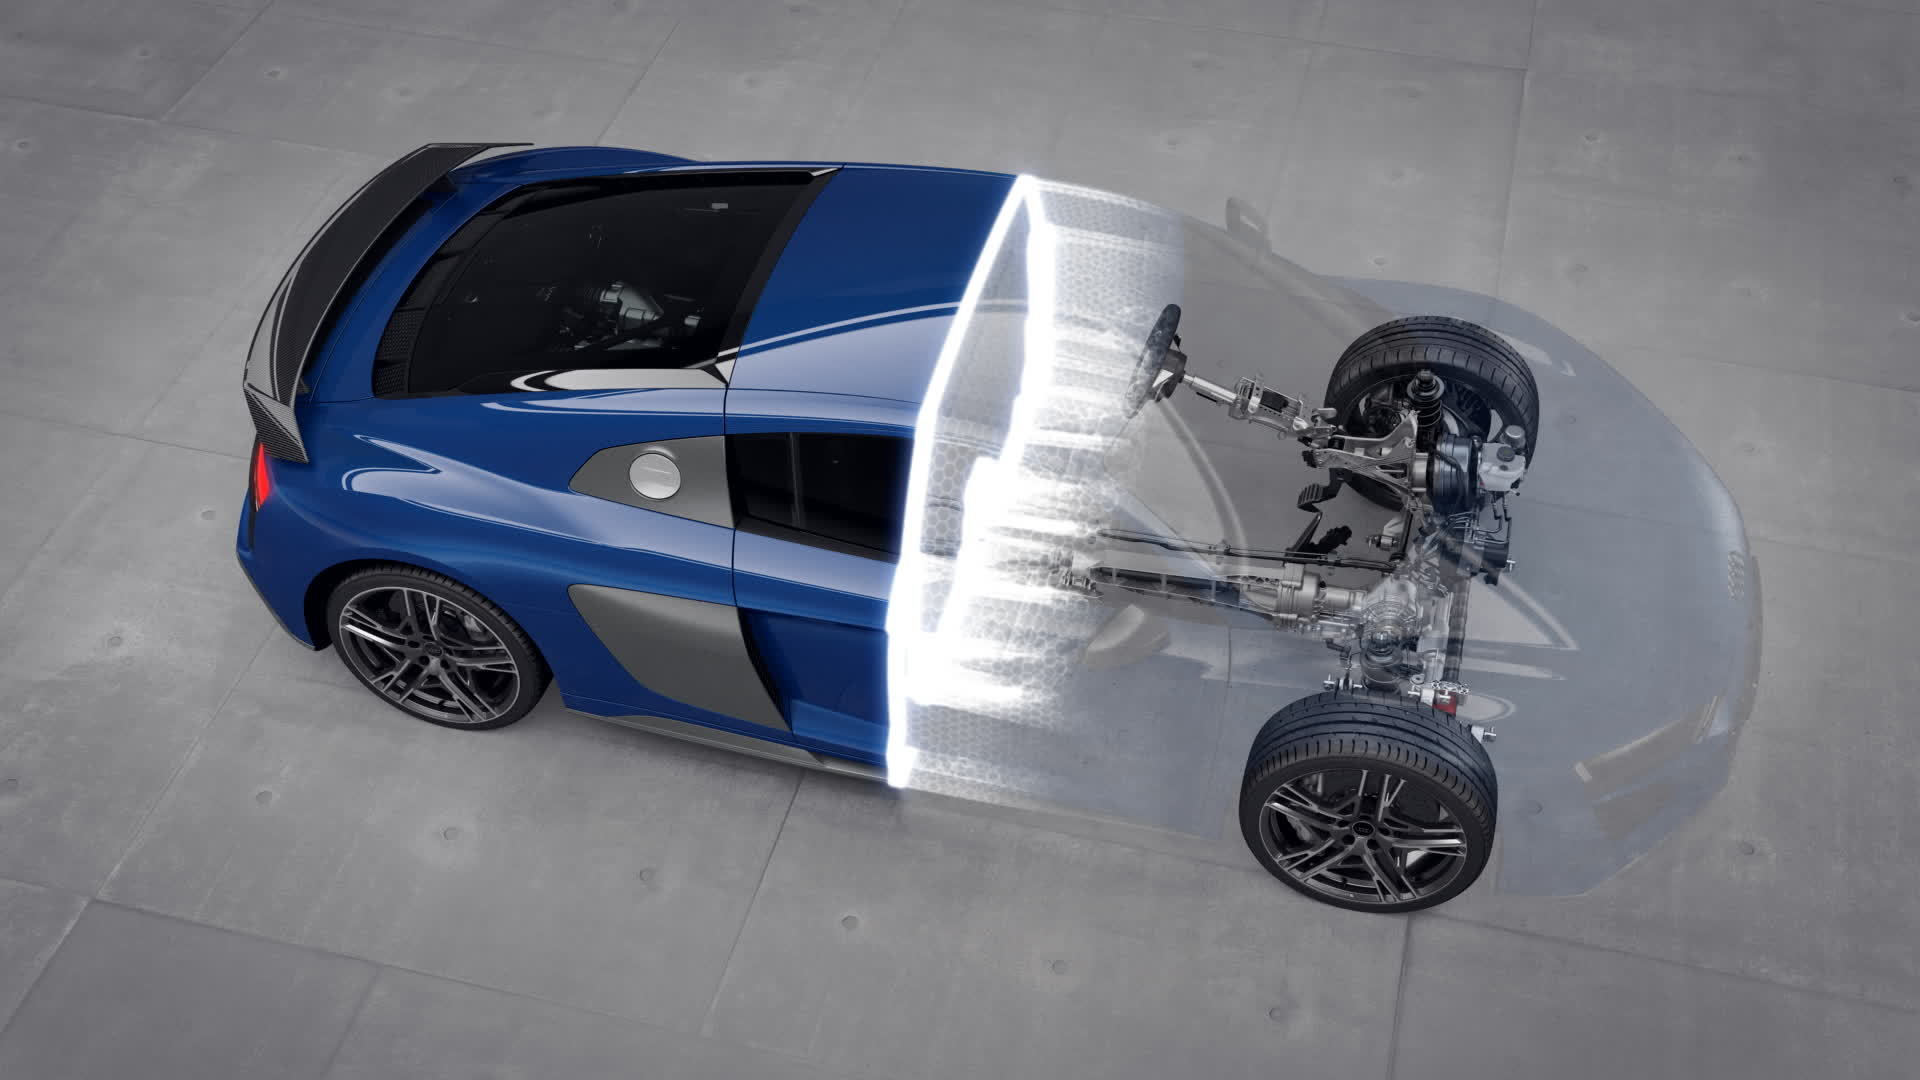 Audi R8 V10 performance quattro drivetrain (Animation)